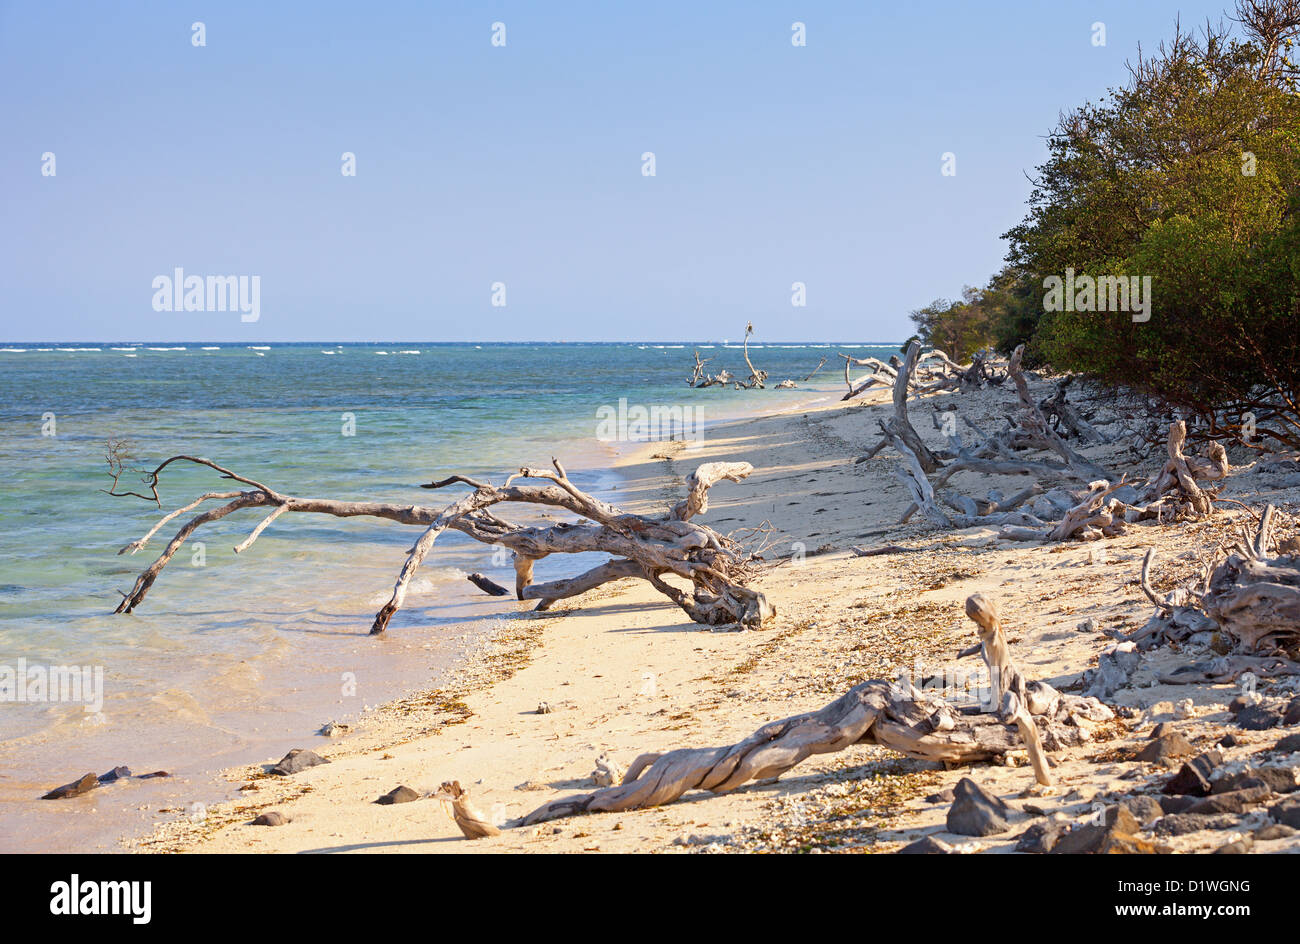 Wild tropical beach littered with driftwood. Indonesia, Gili island. - Stock Image